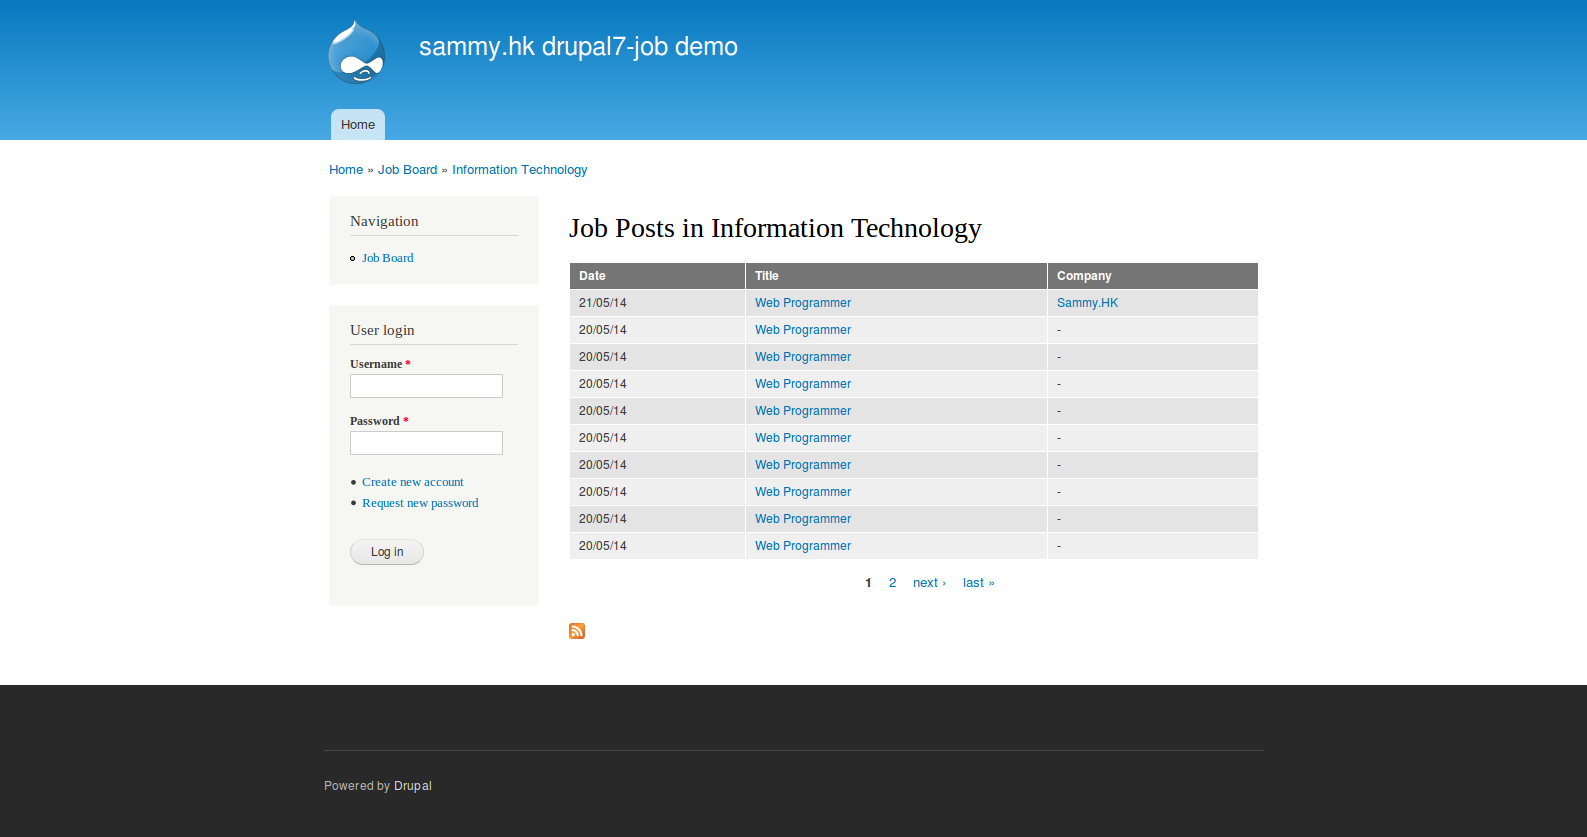 drupal7-job screenshot